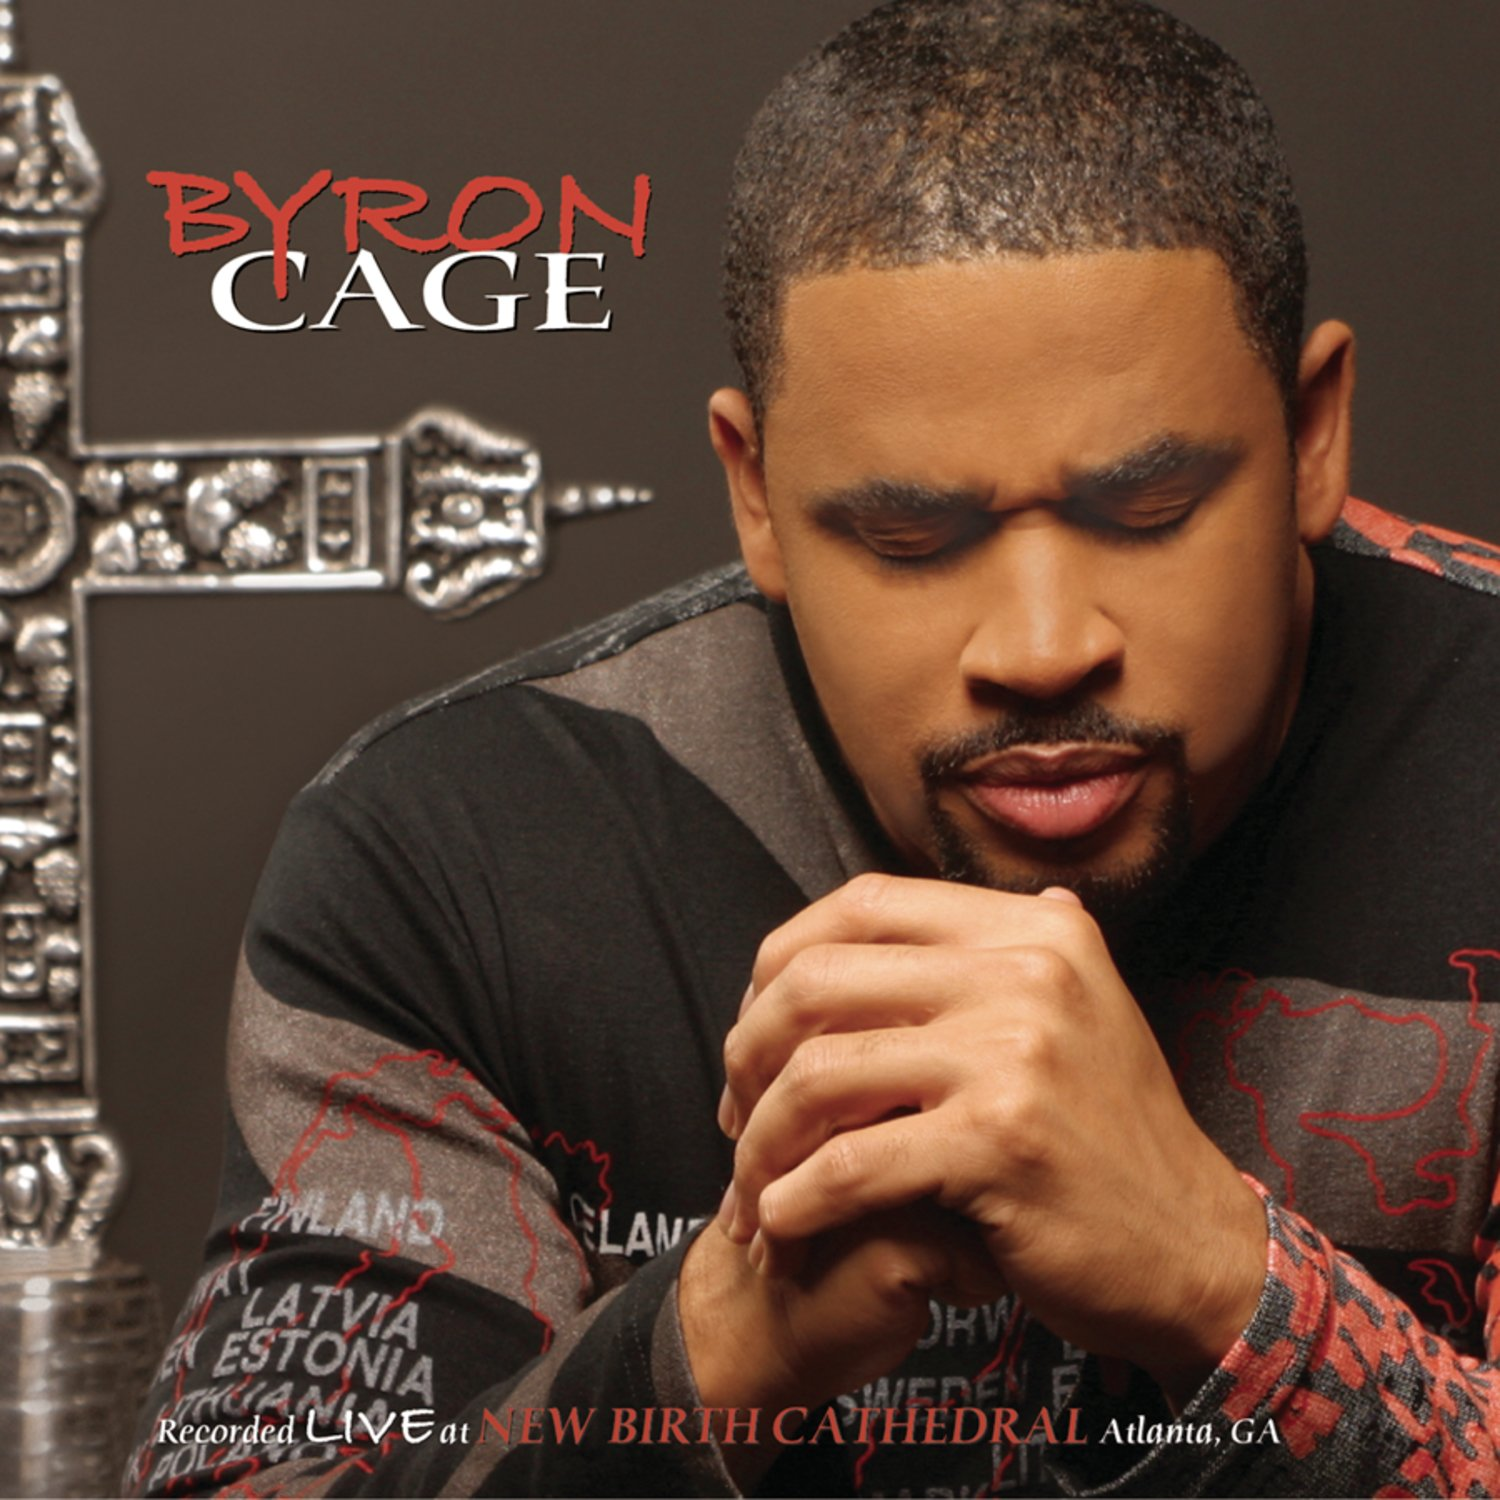 Art for The Presence of the Lord is Here by Byron Cage